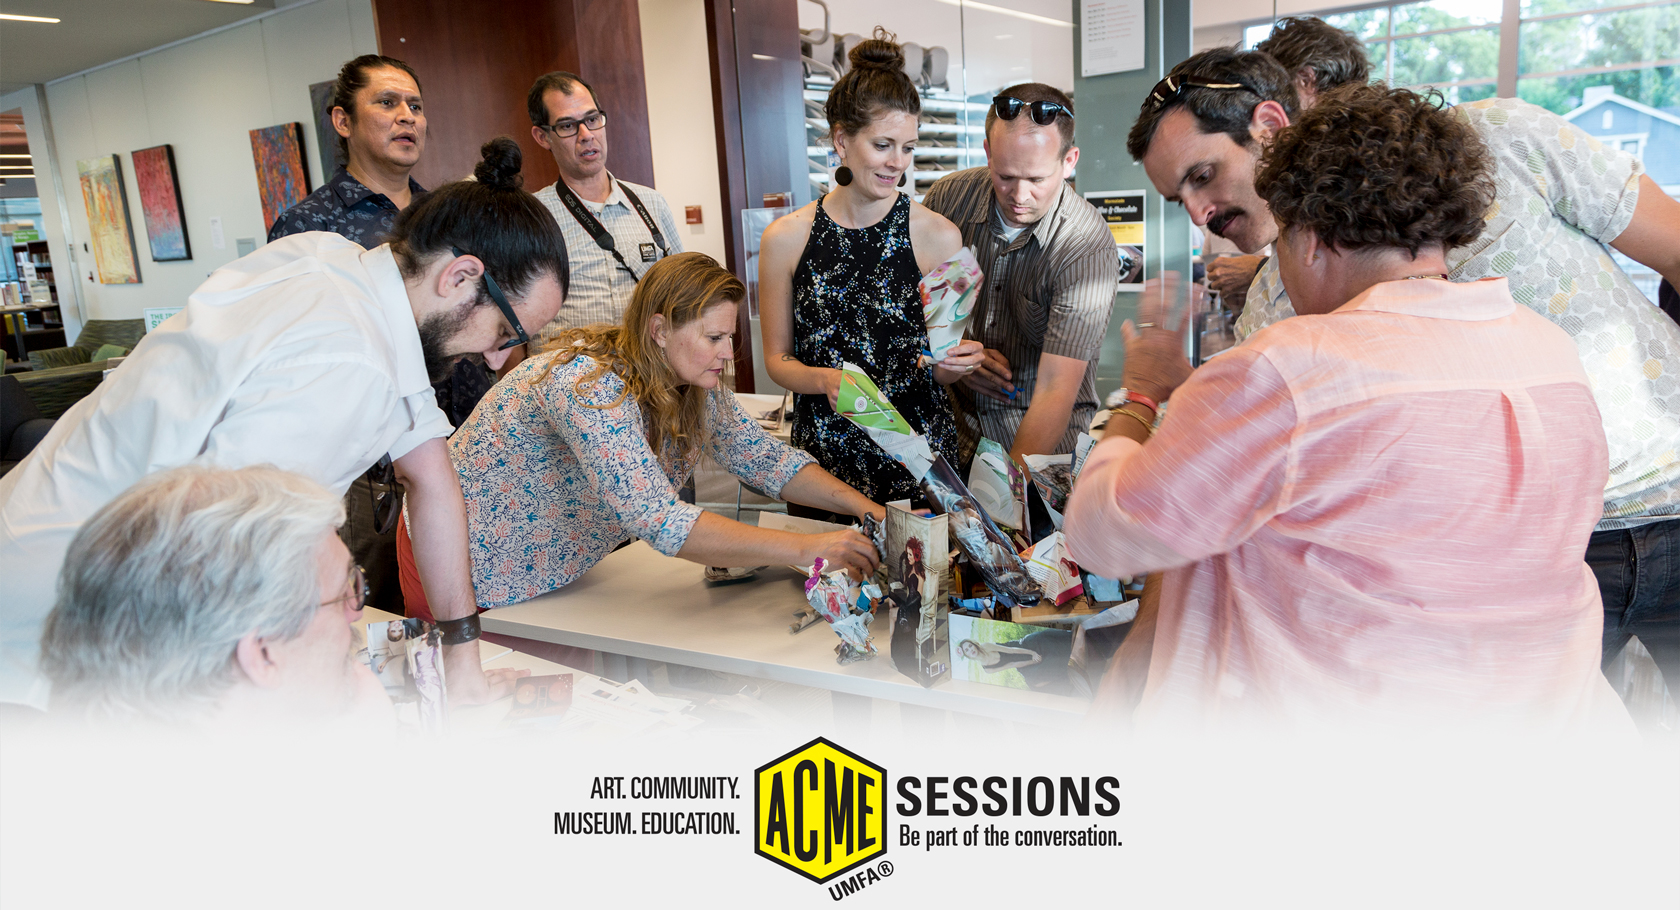 ACME Sessions